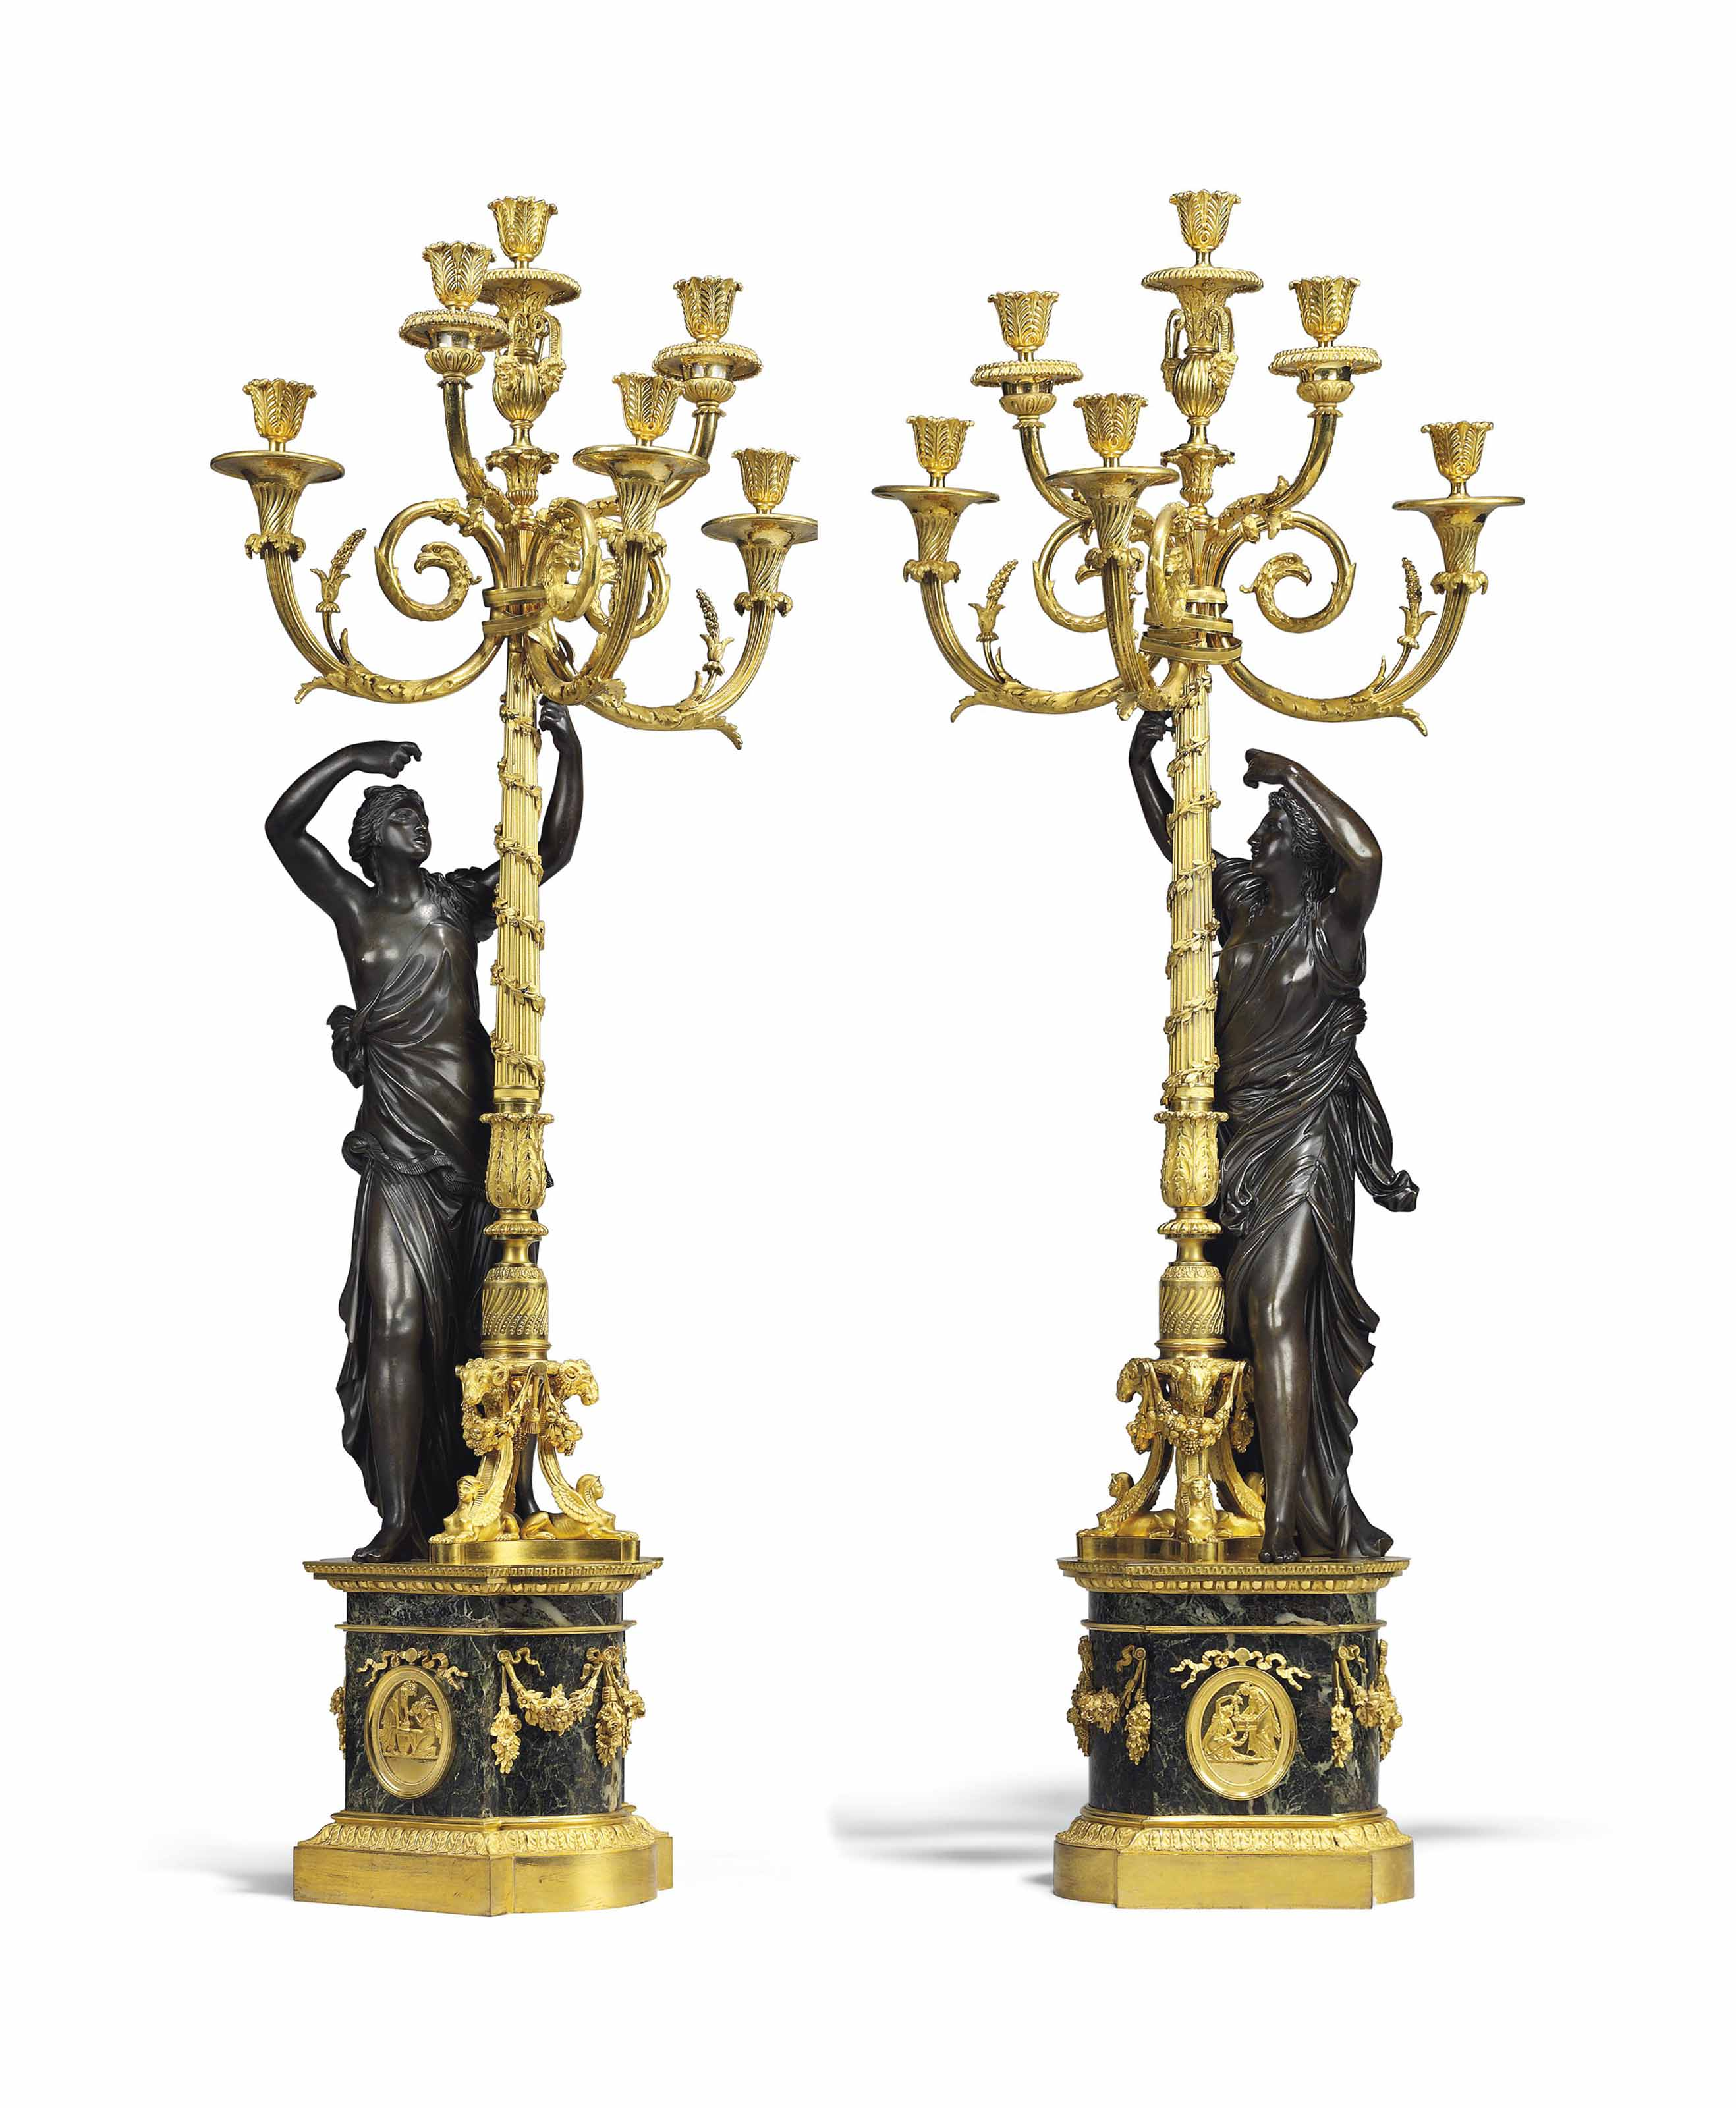 A PAIR OF LATE LOUIS XVI ORMOLU AND PATINATED-BRONZE SIX-LIGHT CANDELABRA